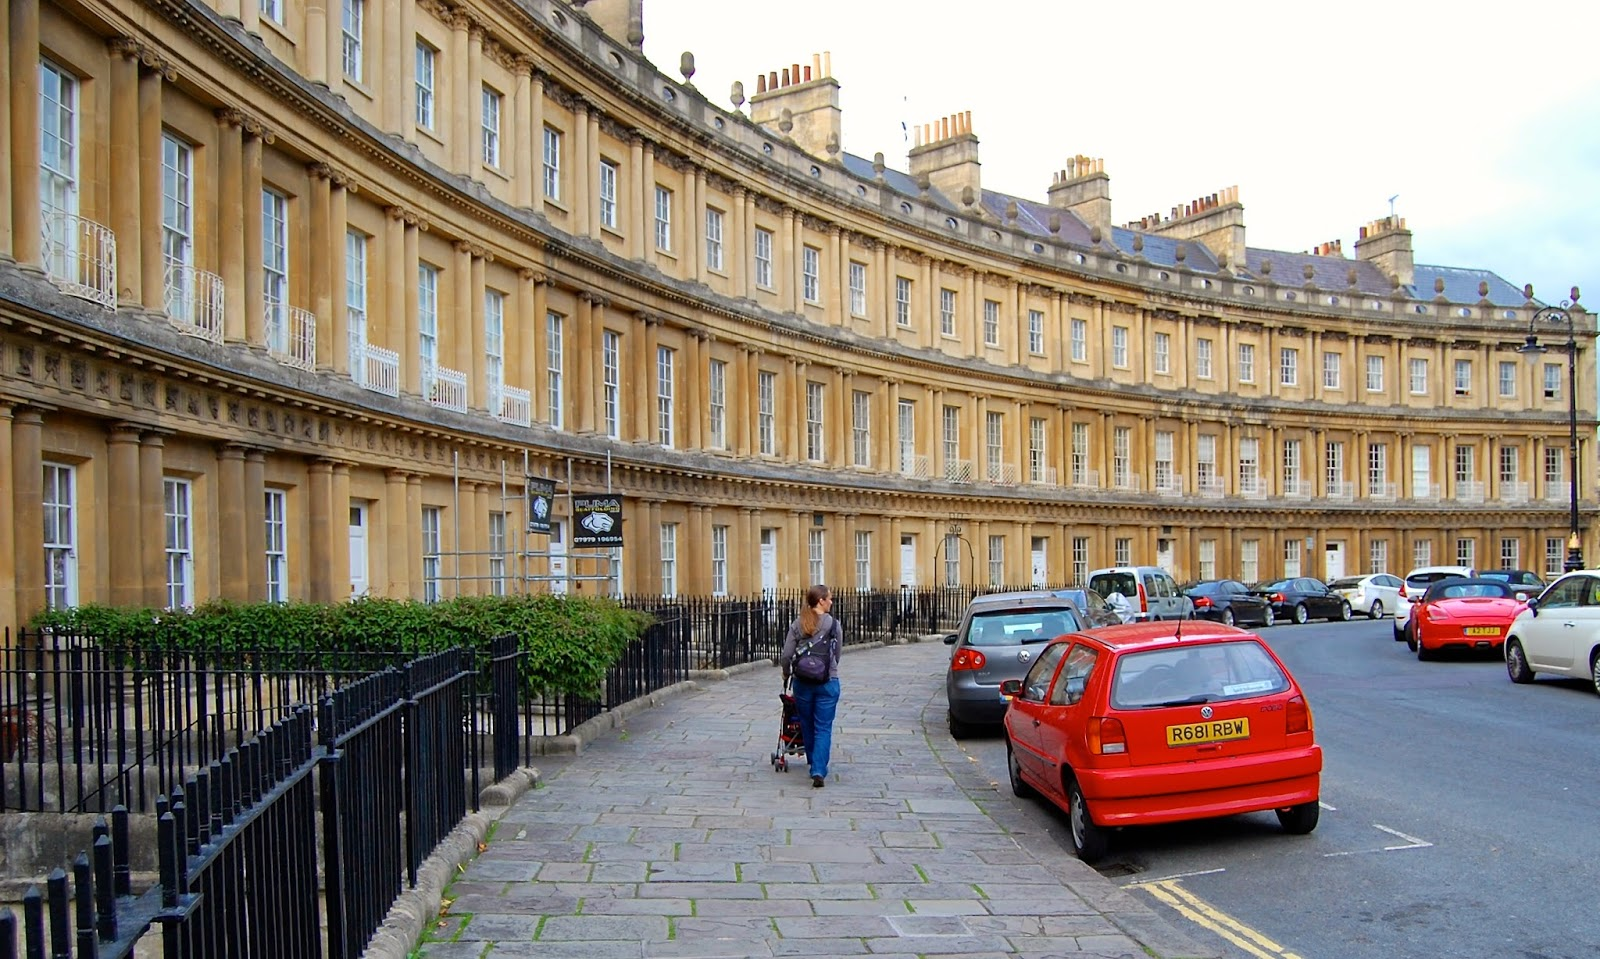 Strolling around the Circus in Bath